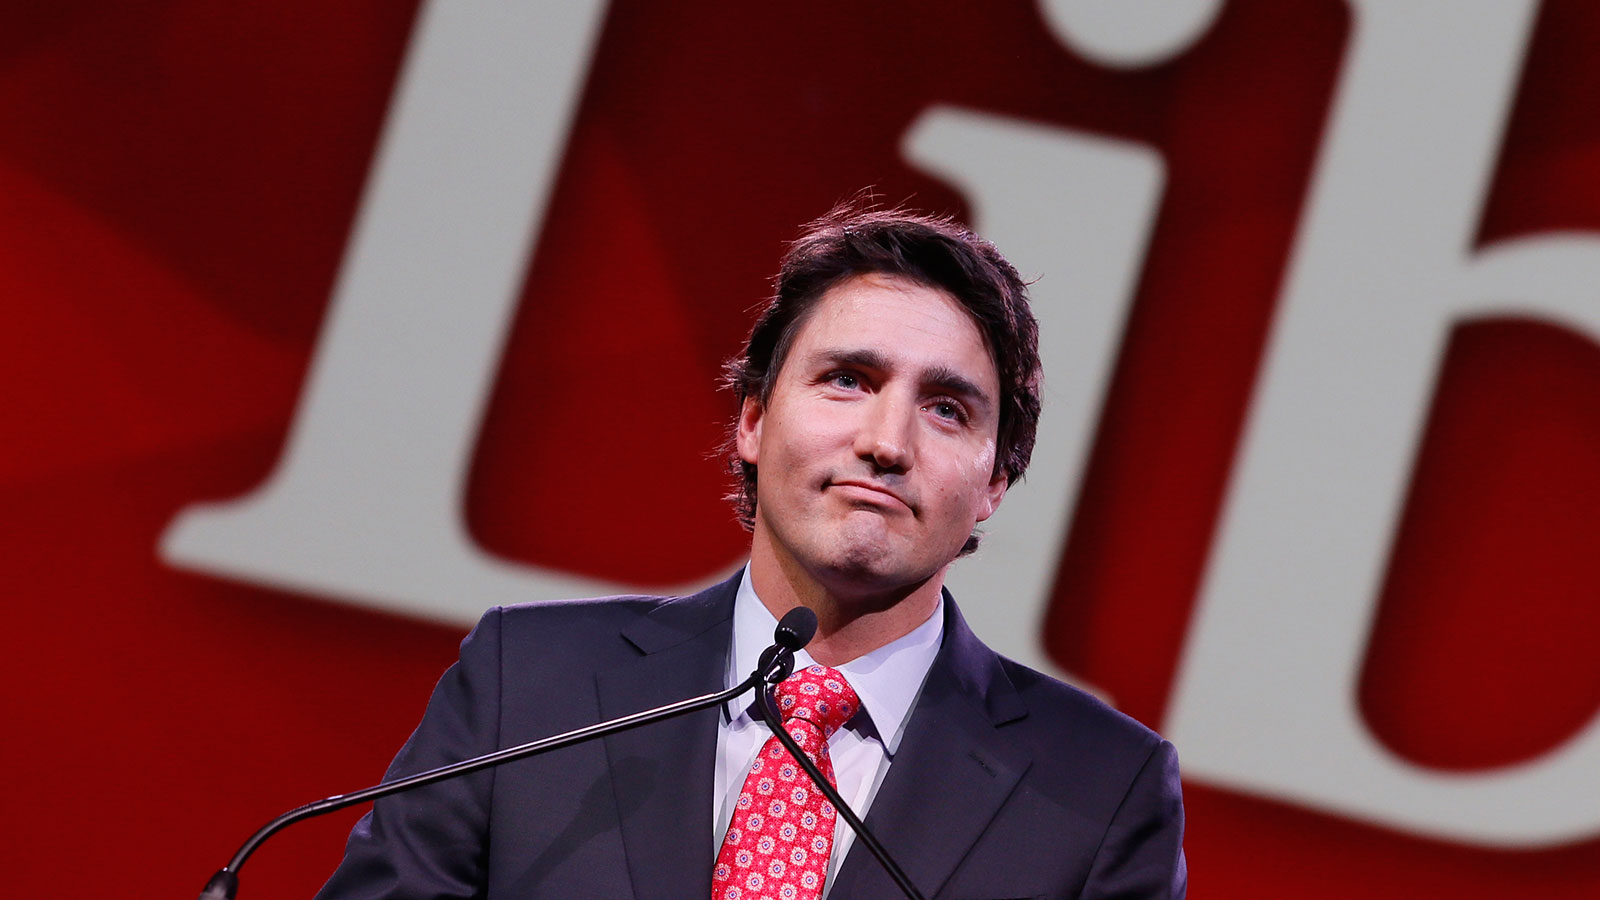 Liberal Leader Justin Trudeau Gives Keynote Address At Biennial Convention In Montreal